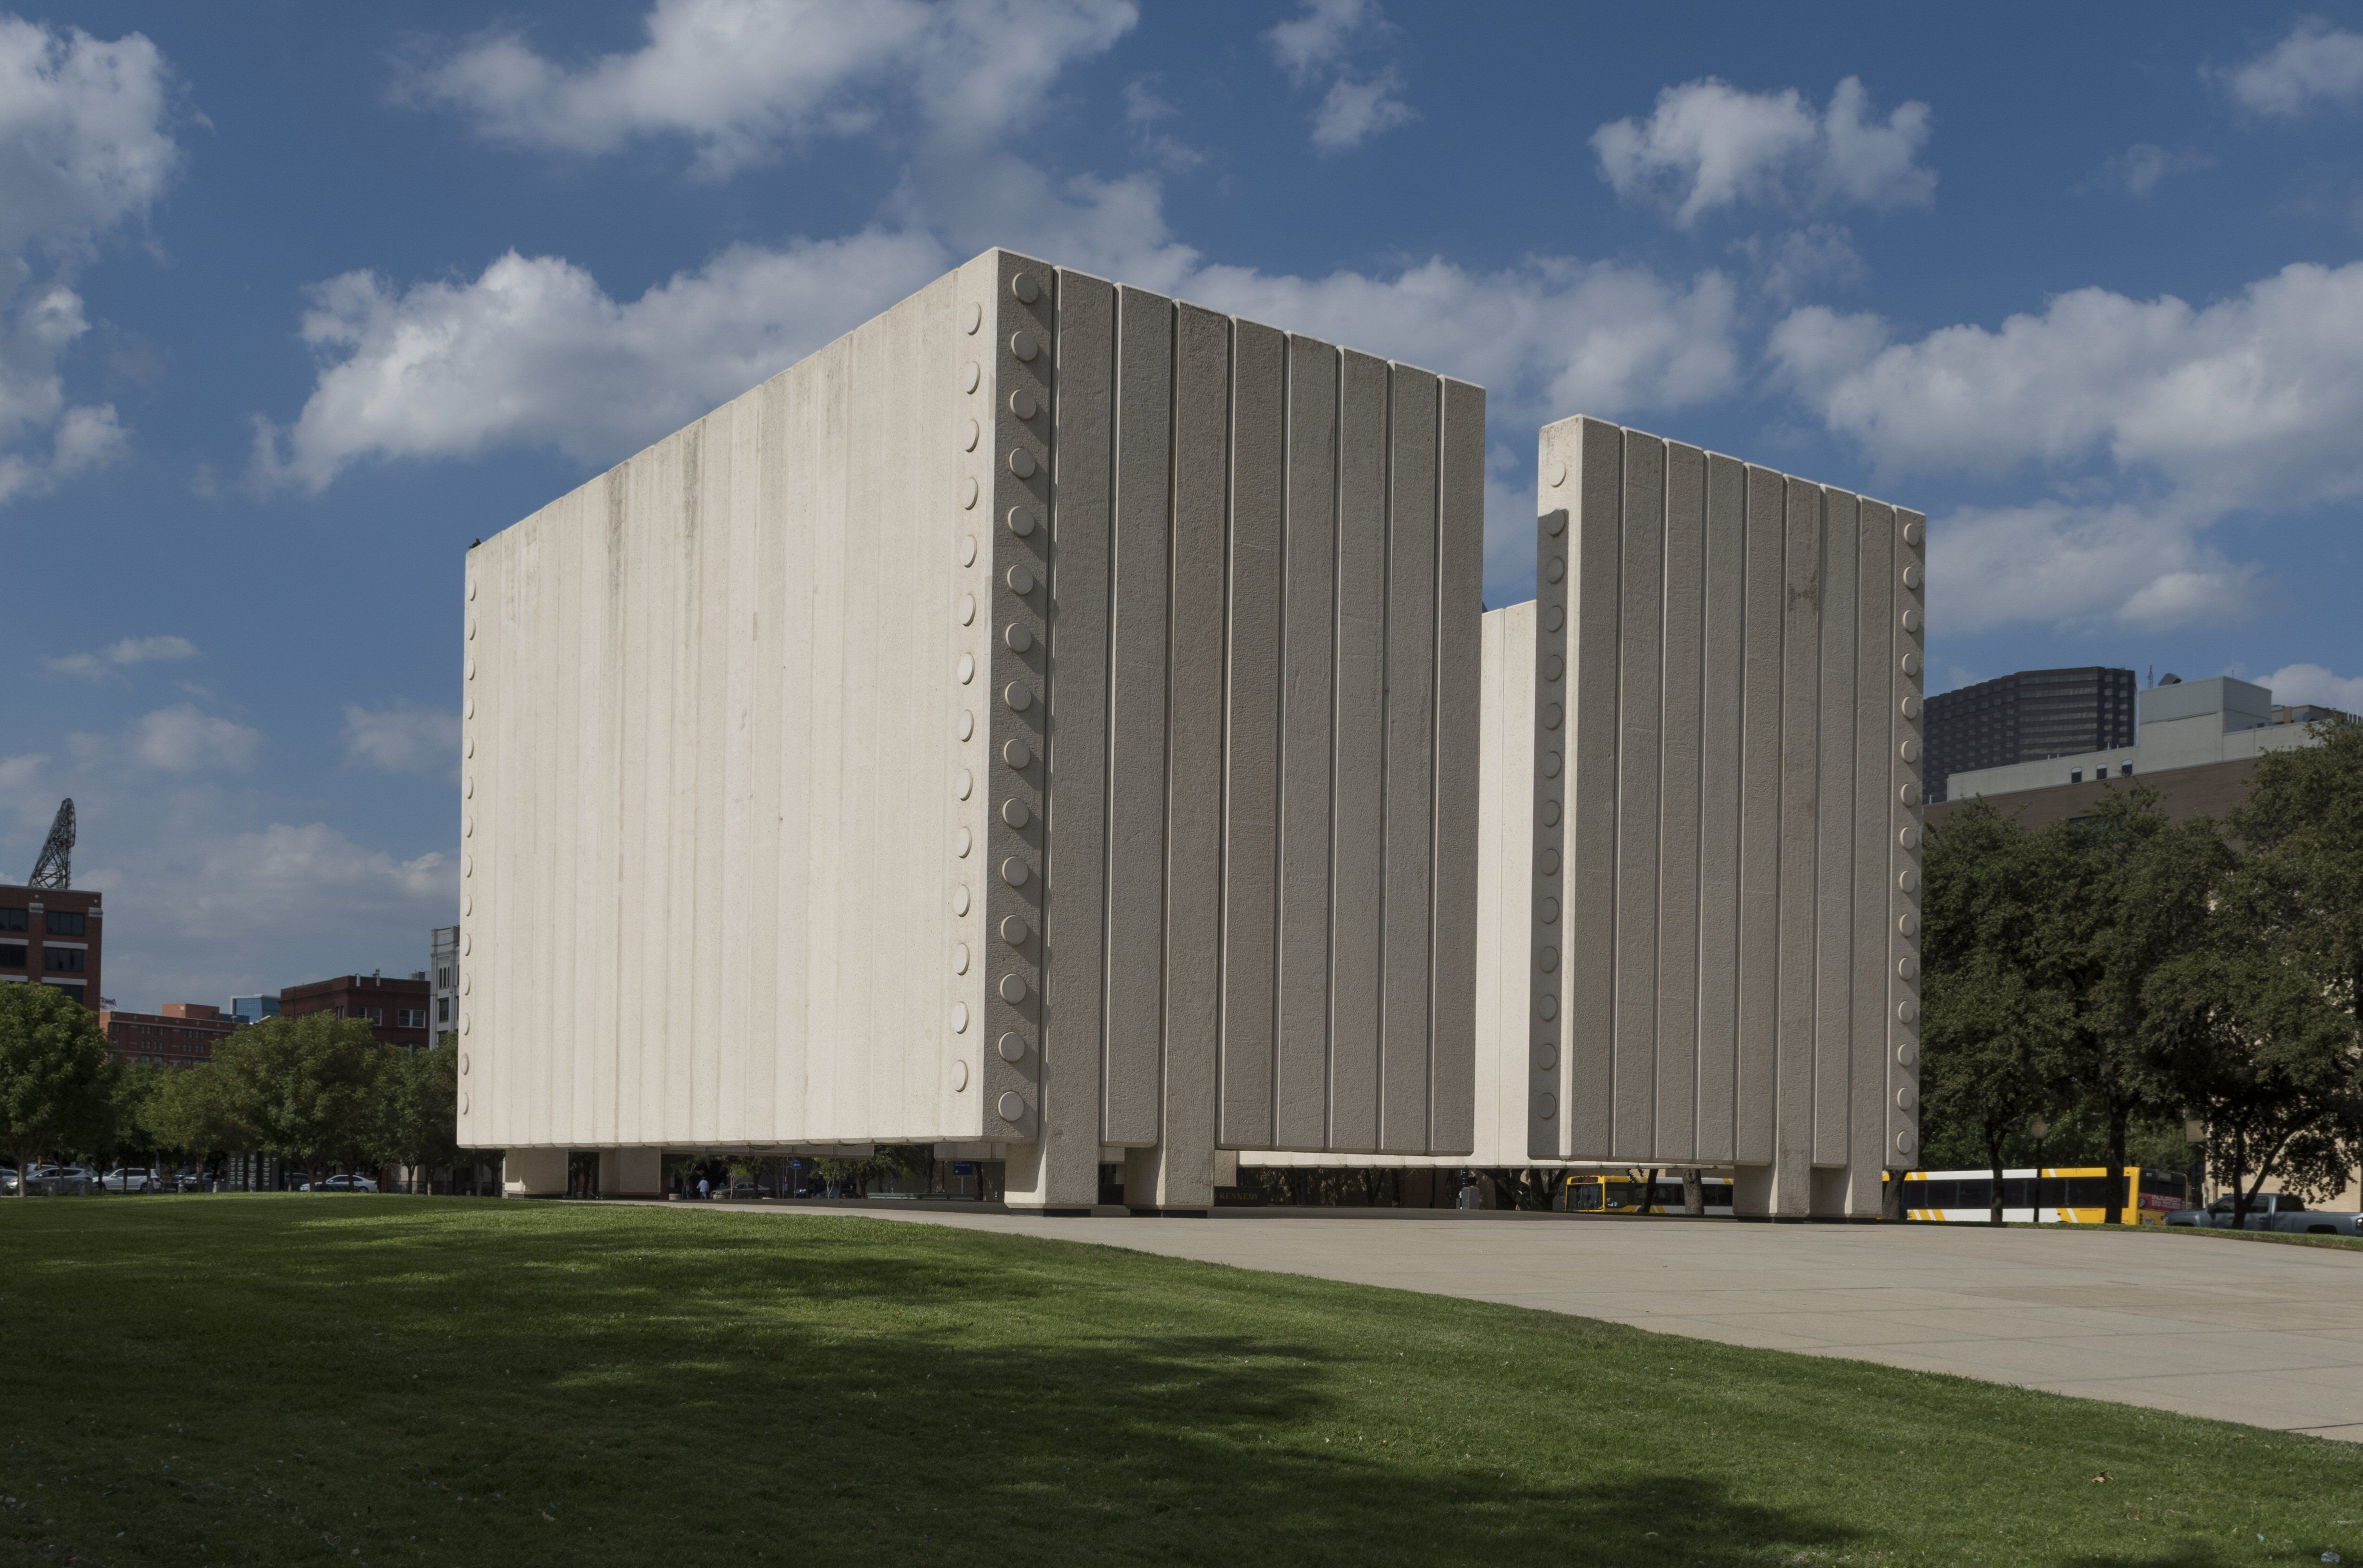 two large white concrete cubes that can be entered into